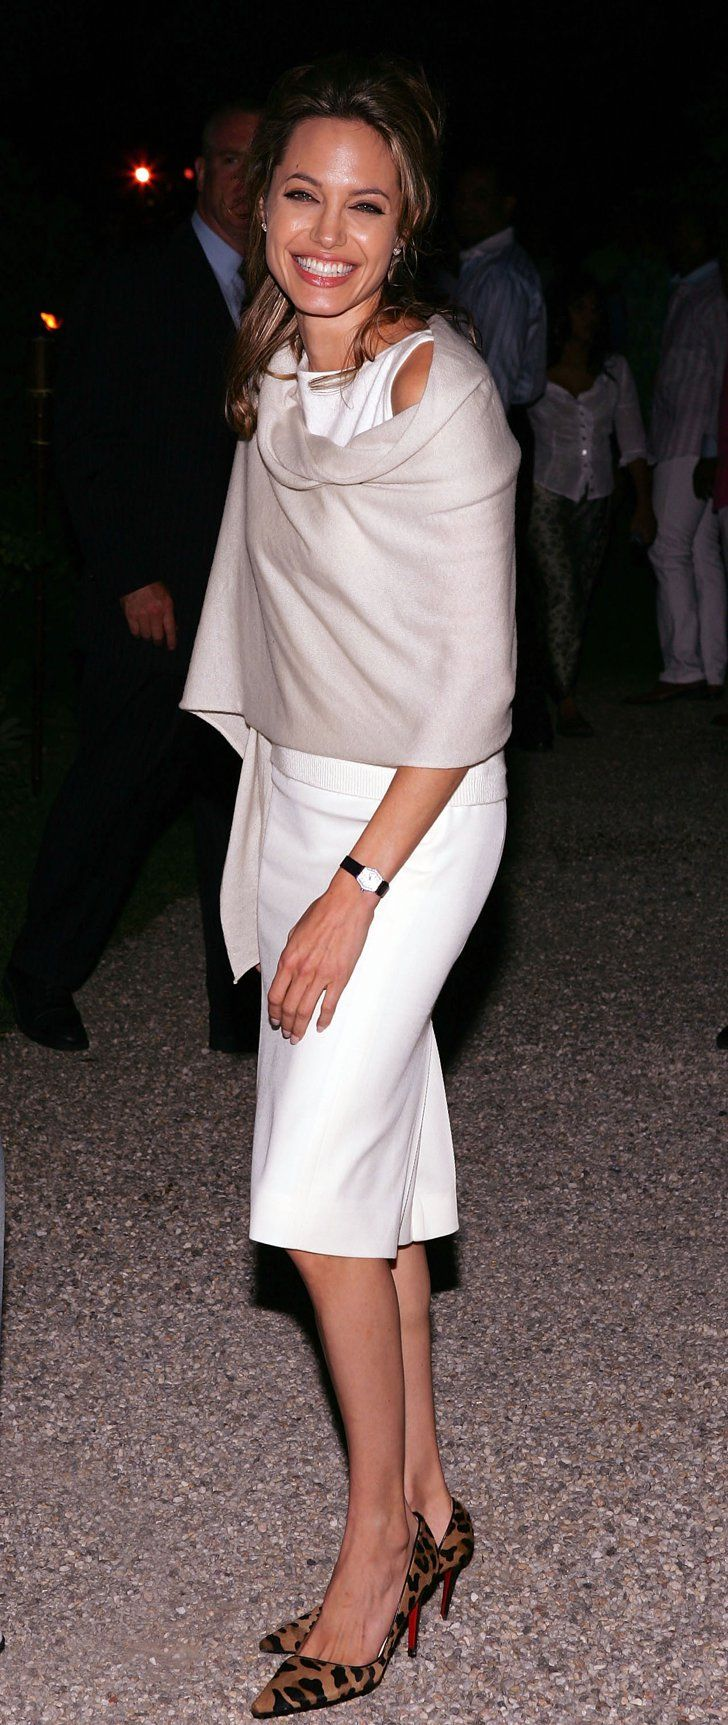 Pin for Later: How Vampy Did Angelina Jolie Go For Her Wedding? Angelina Jolie's Red Carpet Transformation She looked pristine in a little white sheath and pop of print, via leopard shoes, in 2005.